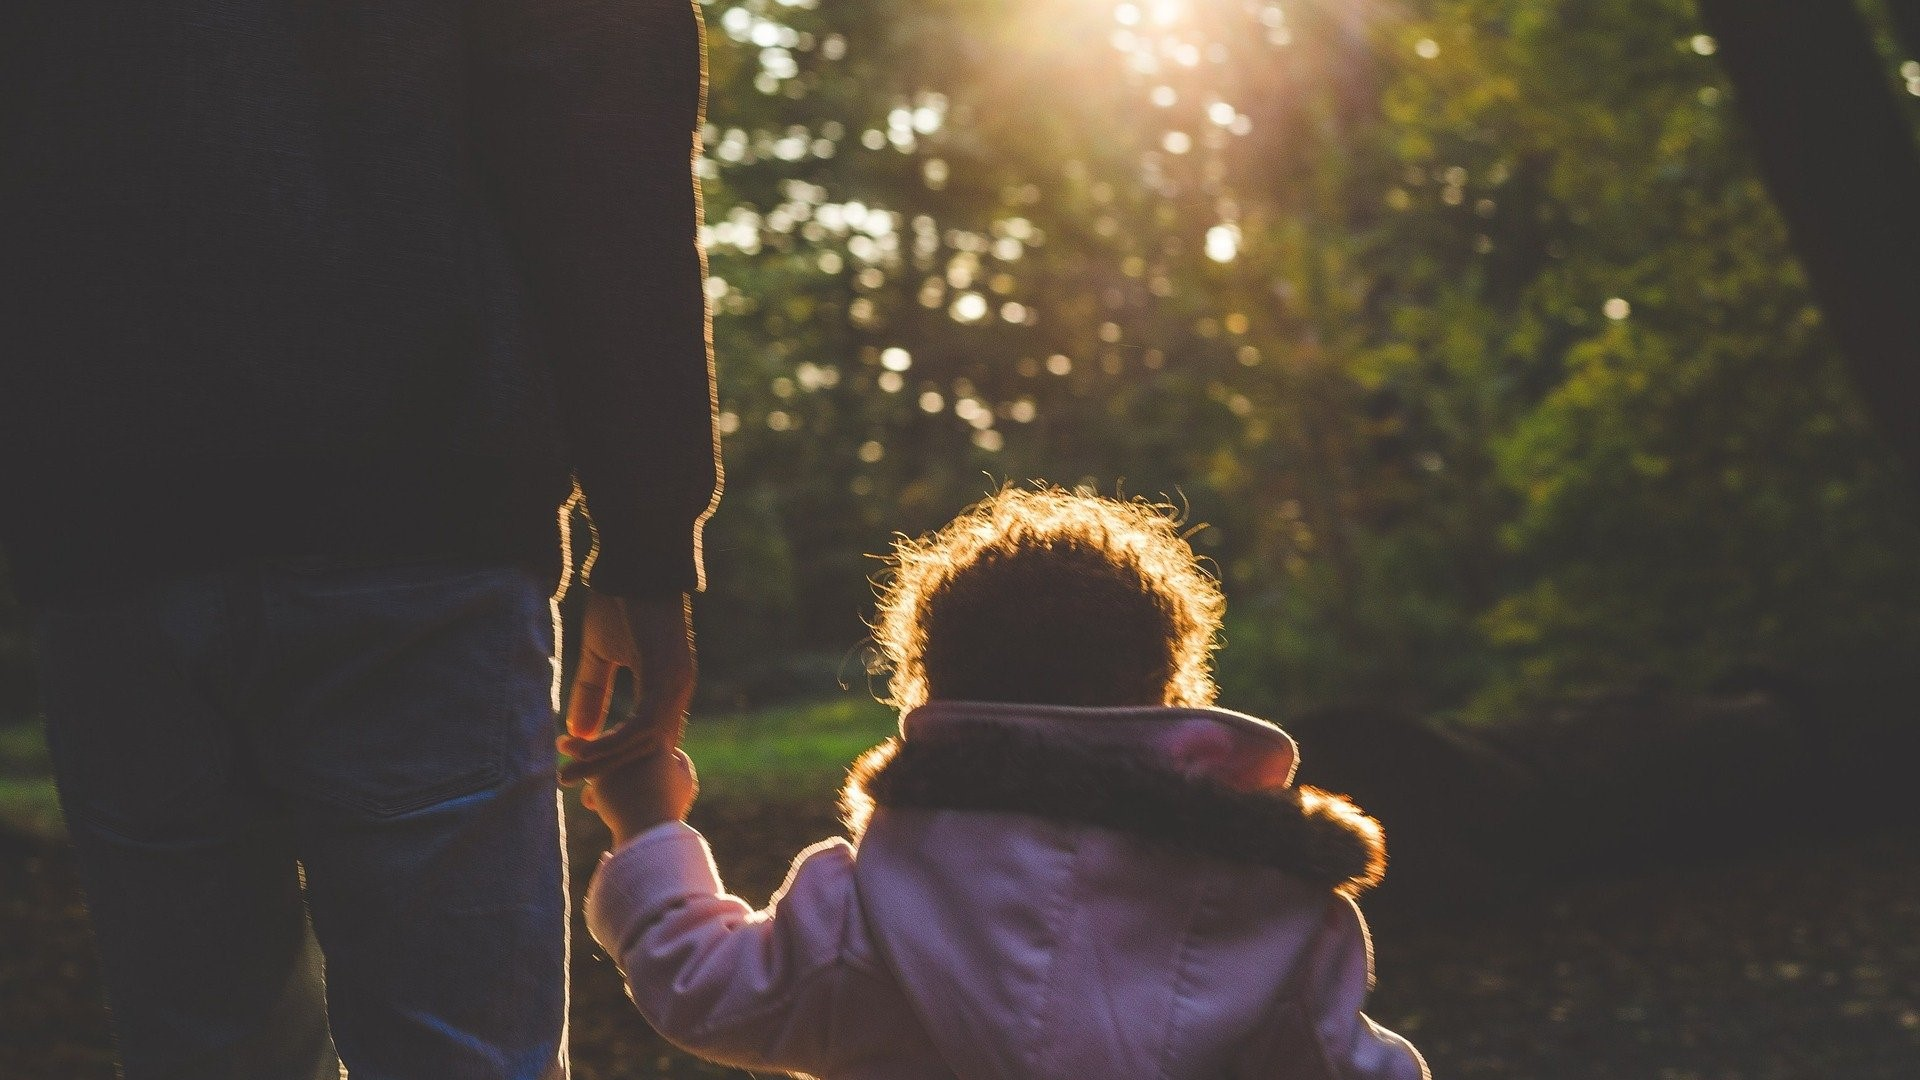 Image: child holding an adults hand, walking away from the camera into the woods towards the sun